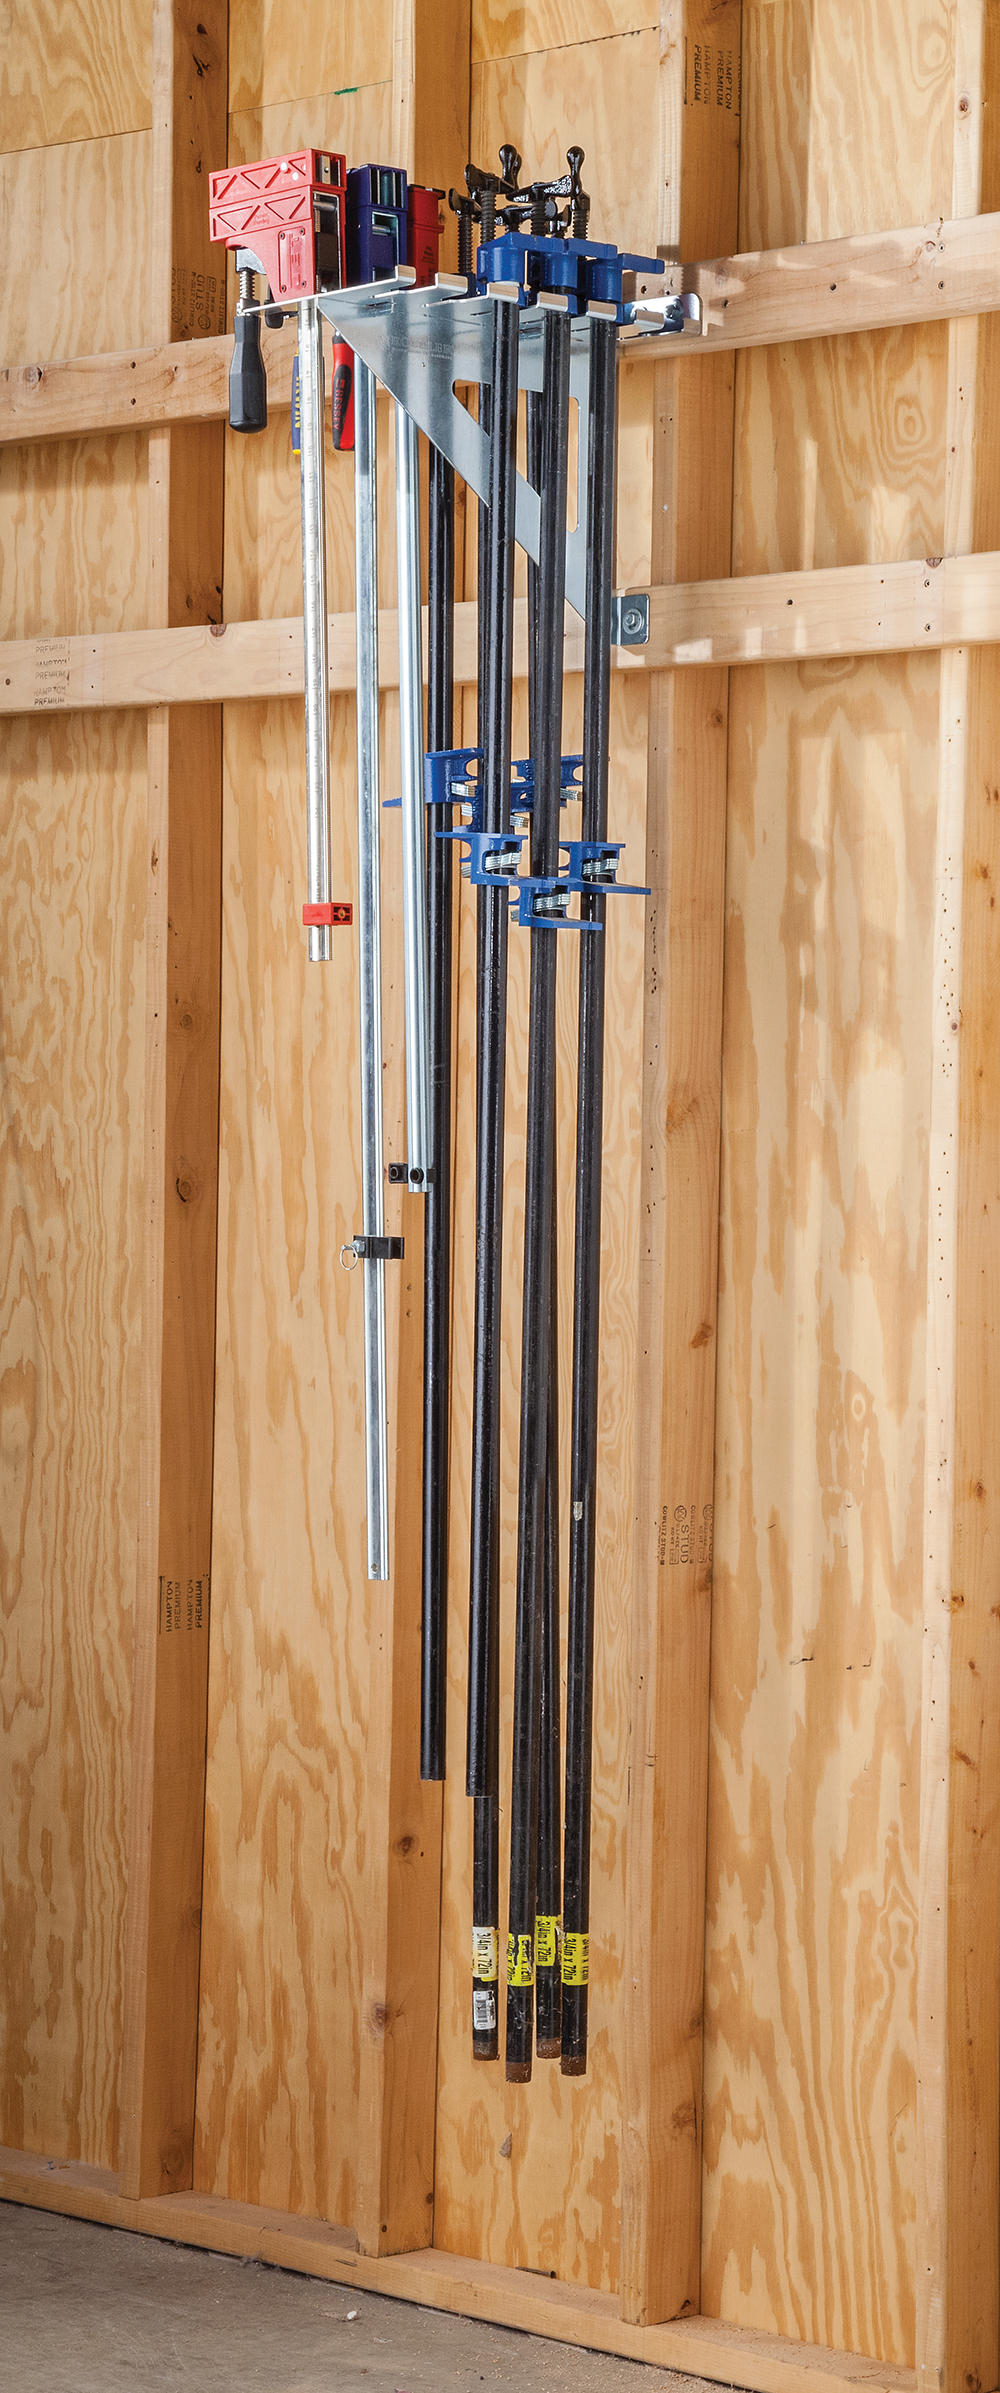 Rocklers New HD Clamp Rack Provides Organized Storage